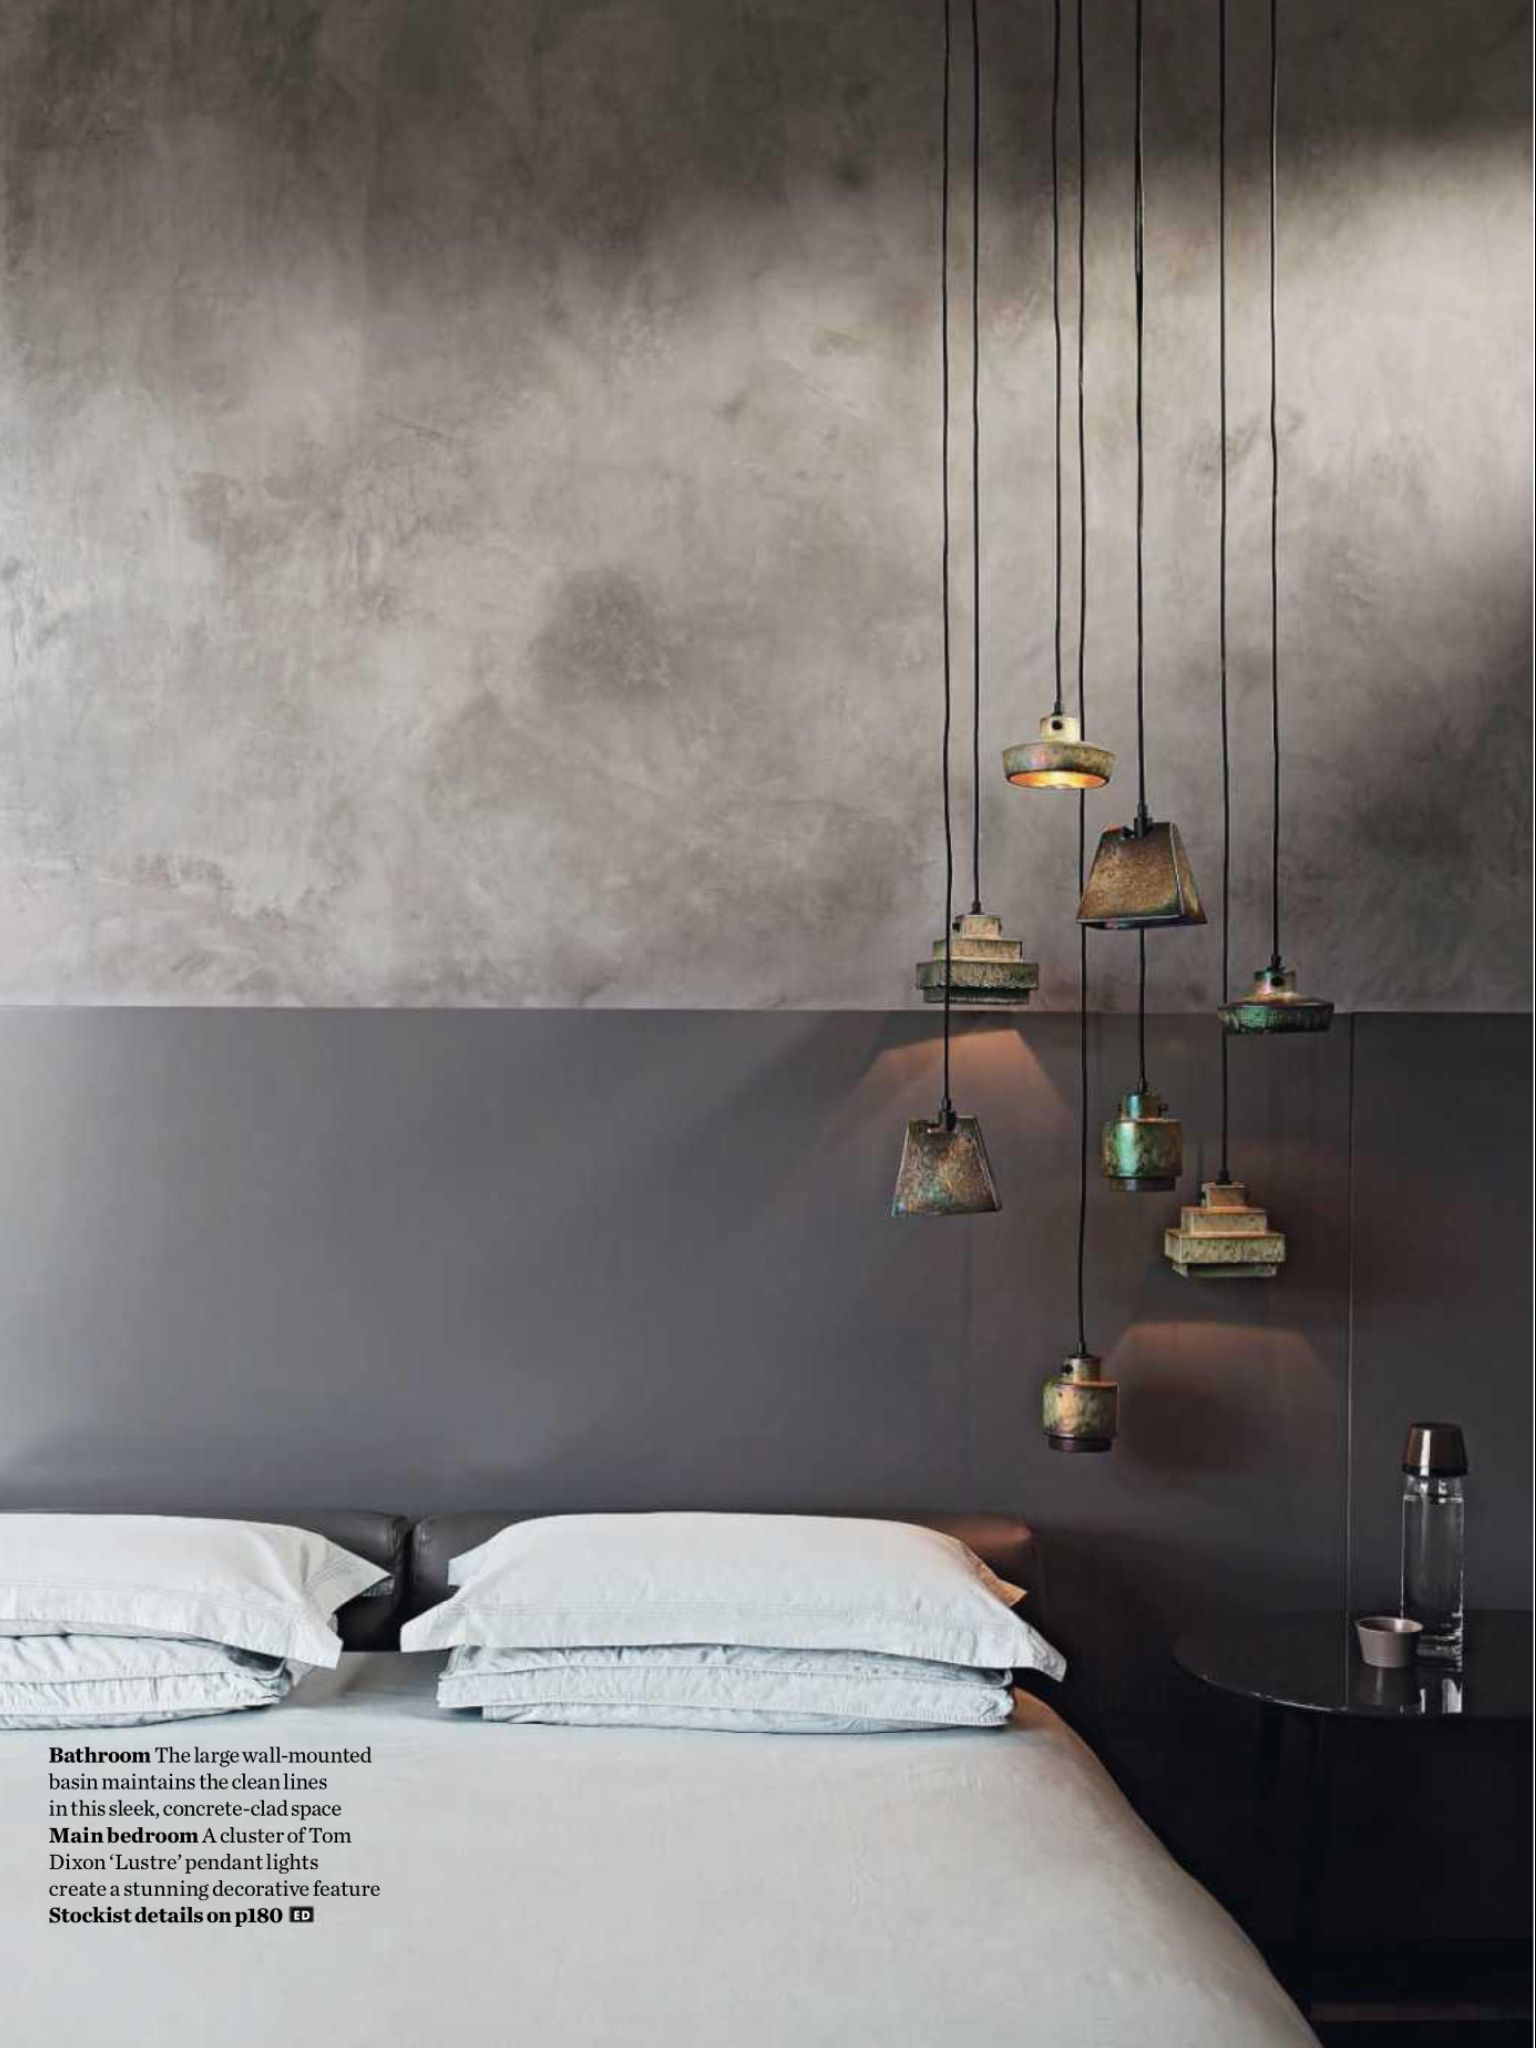 Tom Dixon Pendent Bedroom Design Design Elle Decor